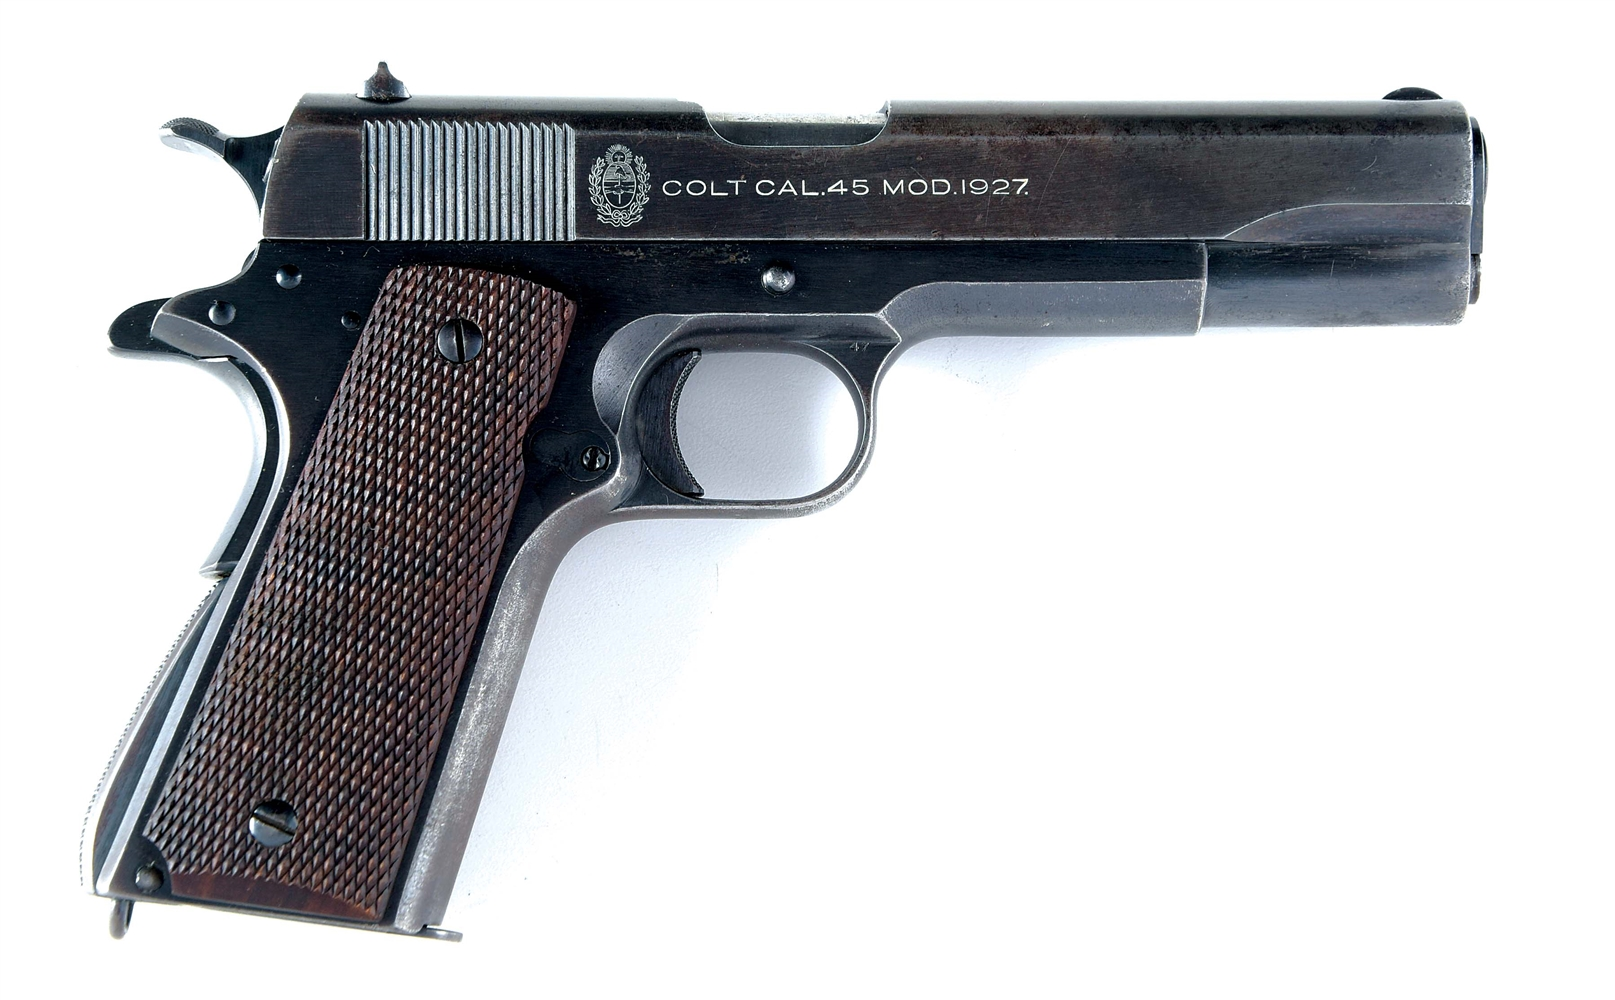 (C) EARLY SERIAL NO. 9 COLT ARGENTINE MODEL 1927 SEMI-AUTOMATIC PISTOL.